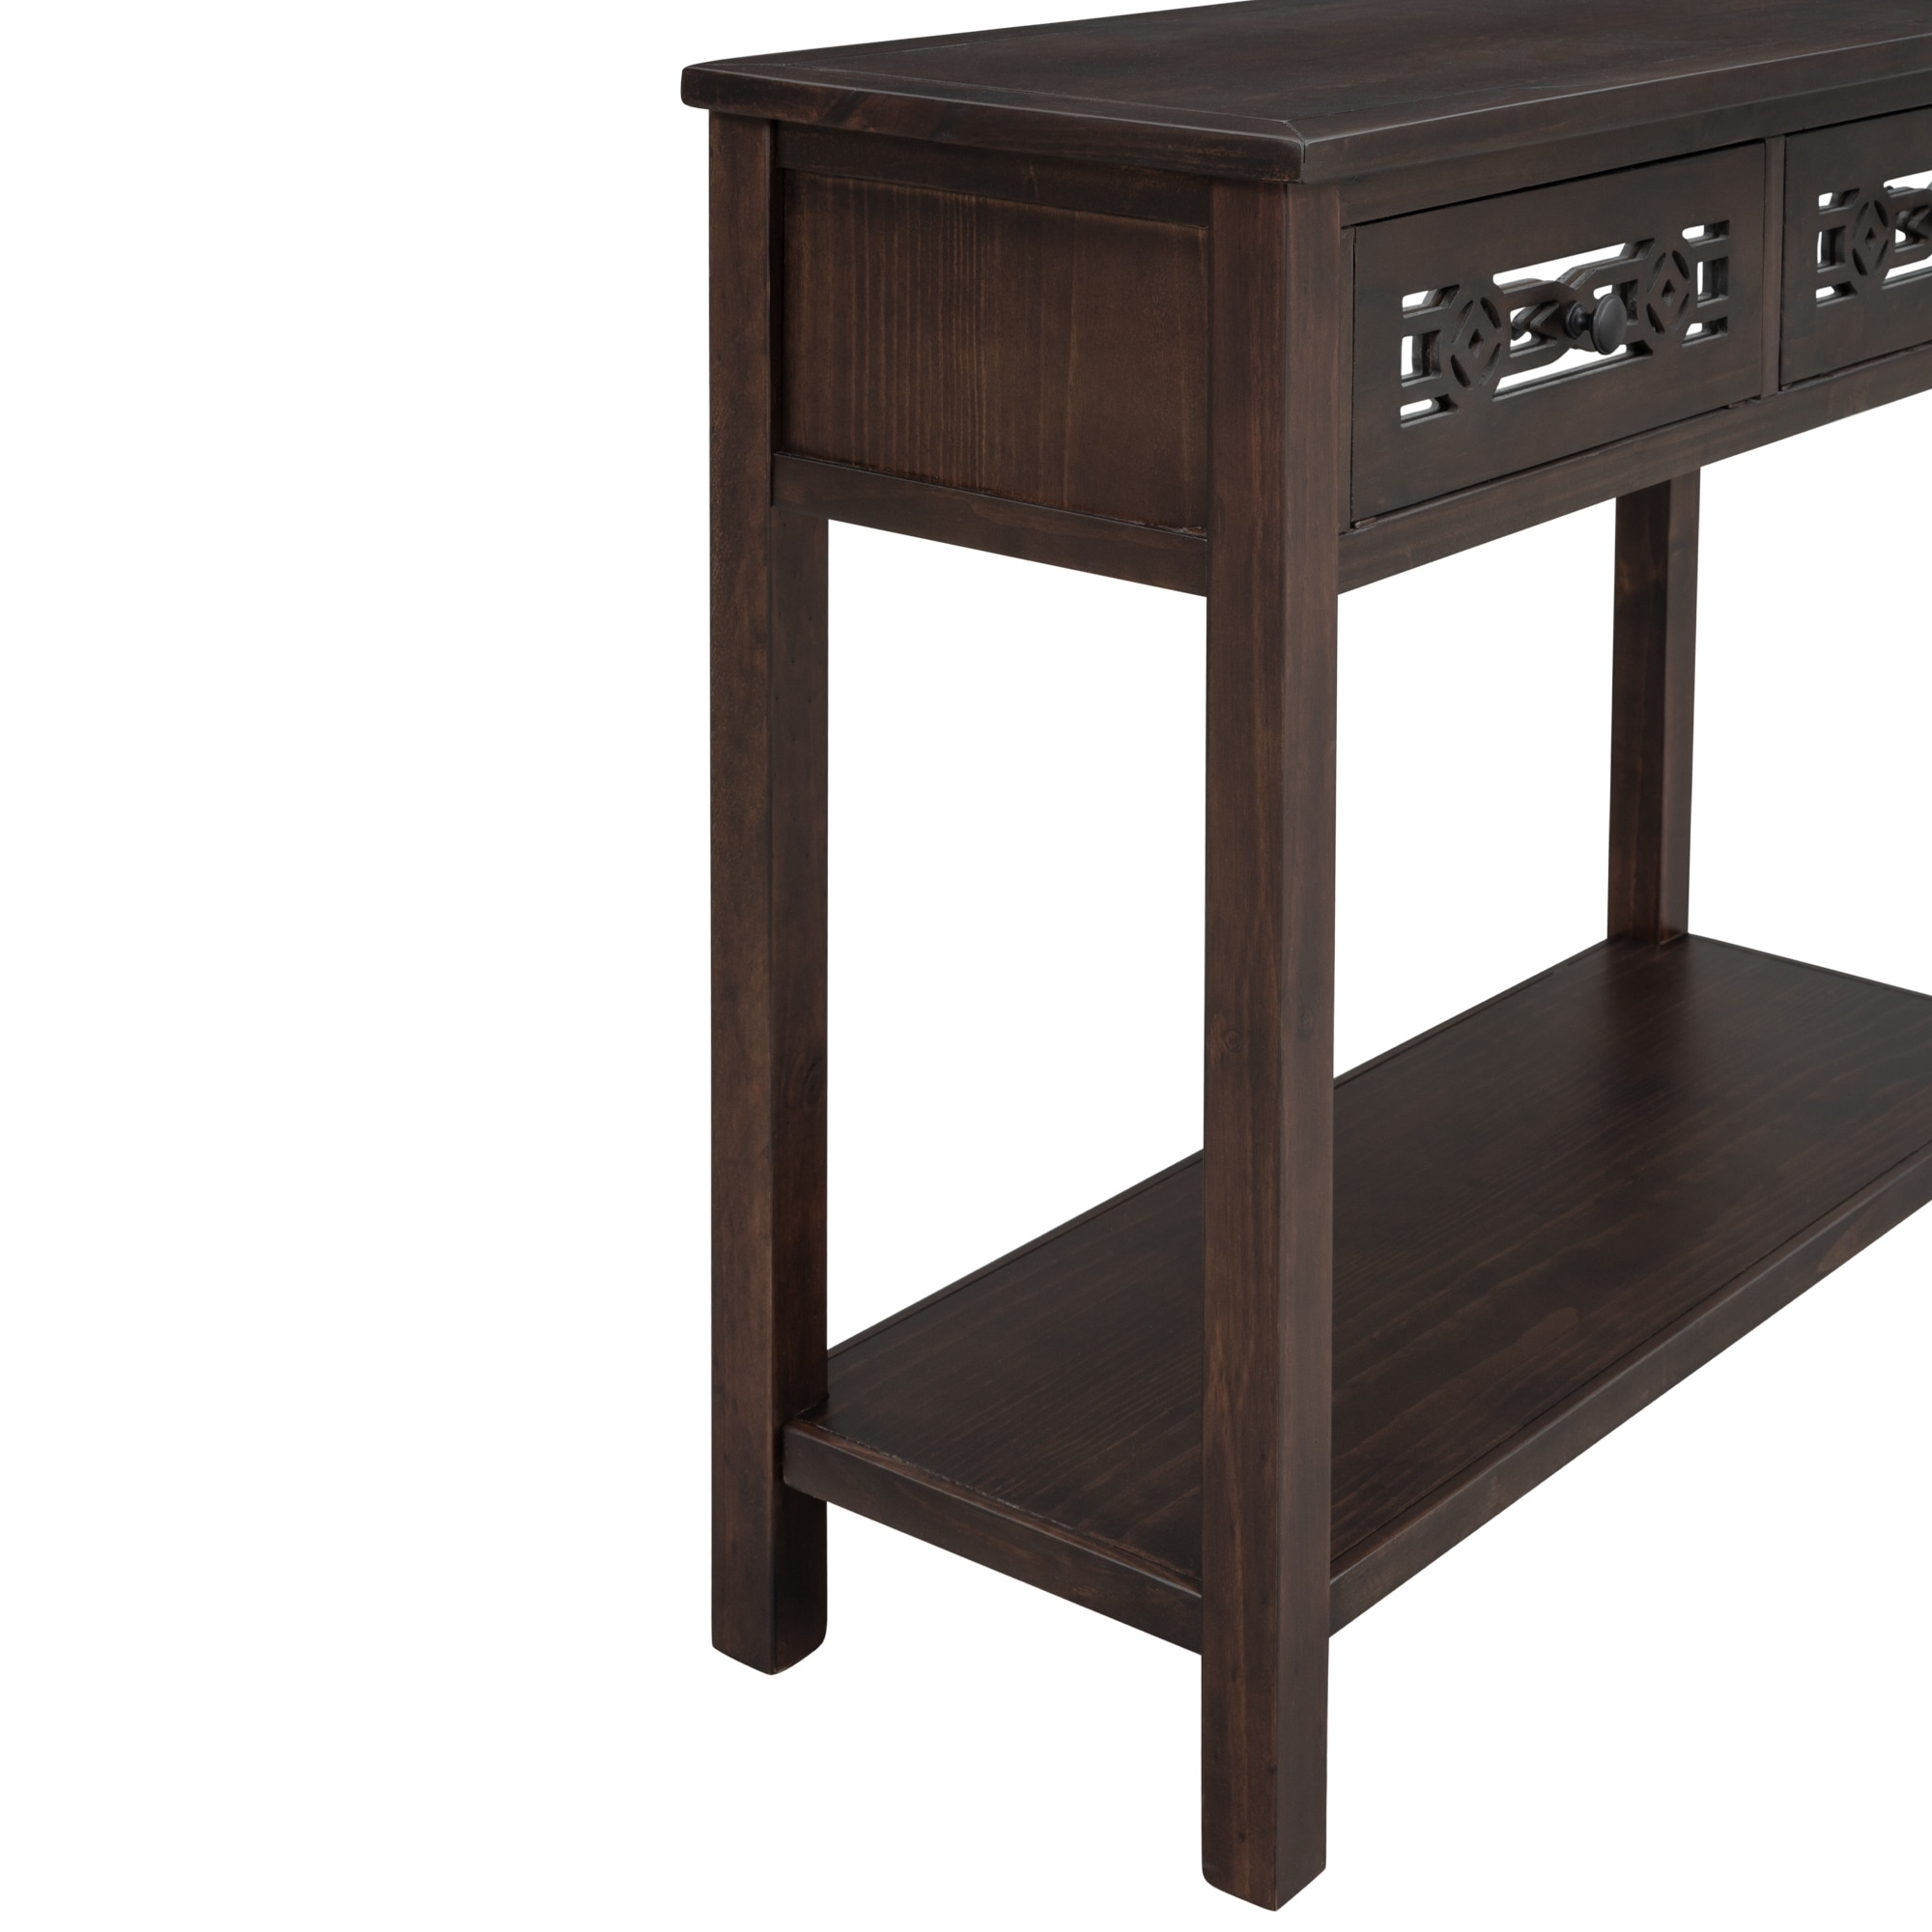 Console Table with Hollow out Decoration Two Top Drawers and Open Shelf  Large Storage Space